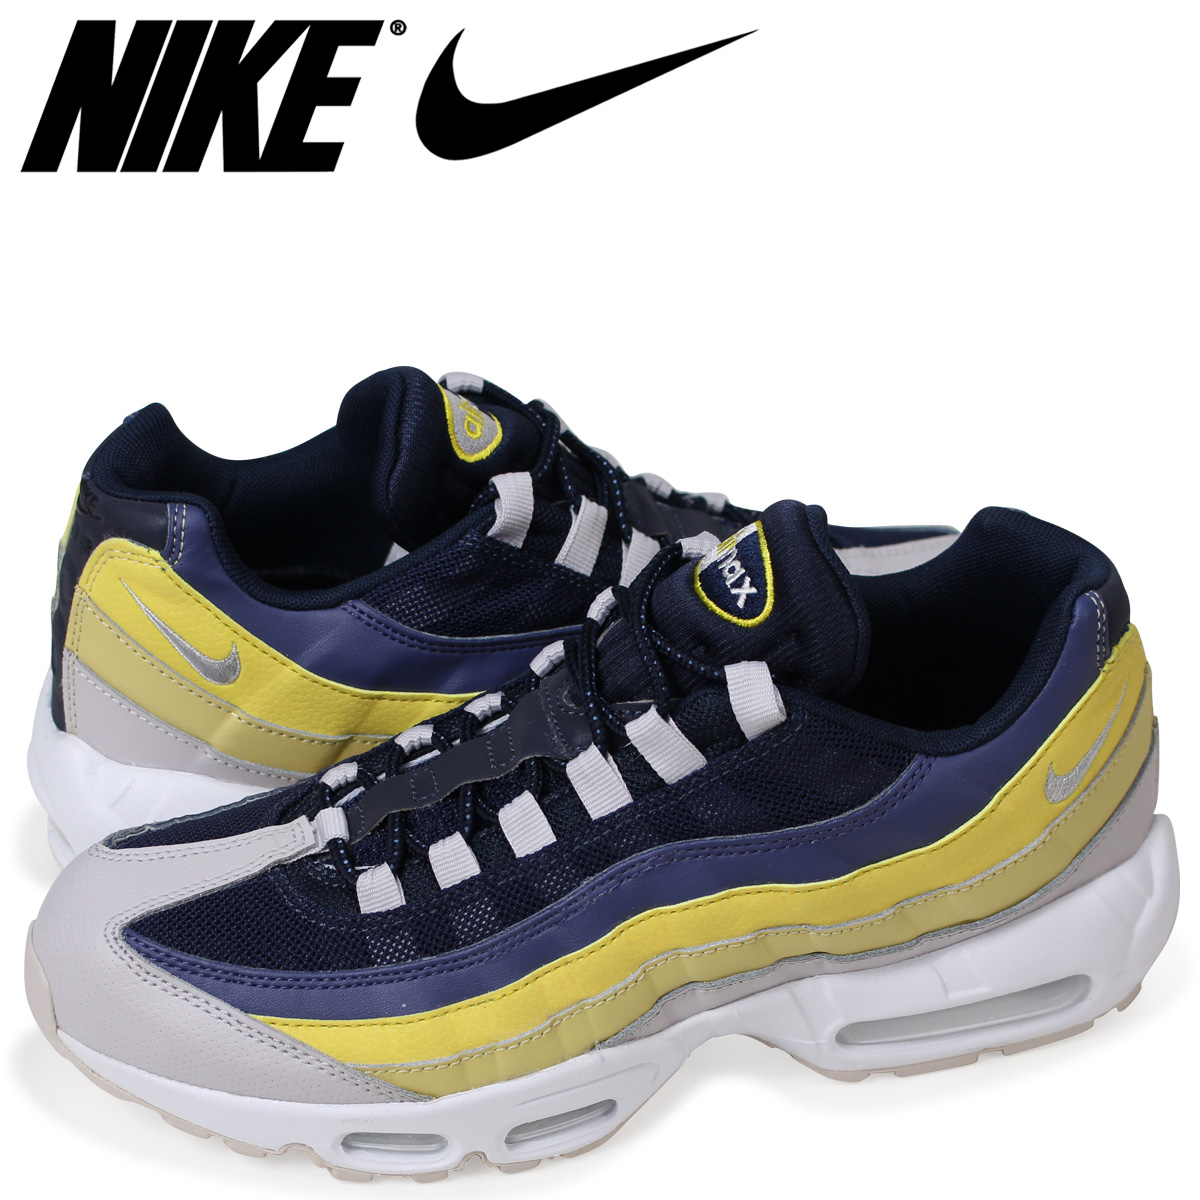 new products 92651 aac9e Nike NIKE Air Max 95 essential sneakers men AIR MAX 95 ESSENTIAL 749,766-107  white load planned Shinnyu load in reservation product 423 containing